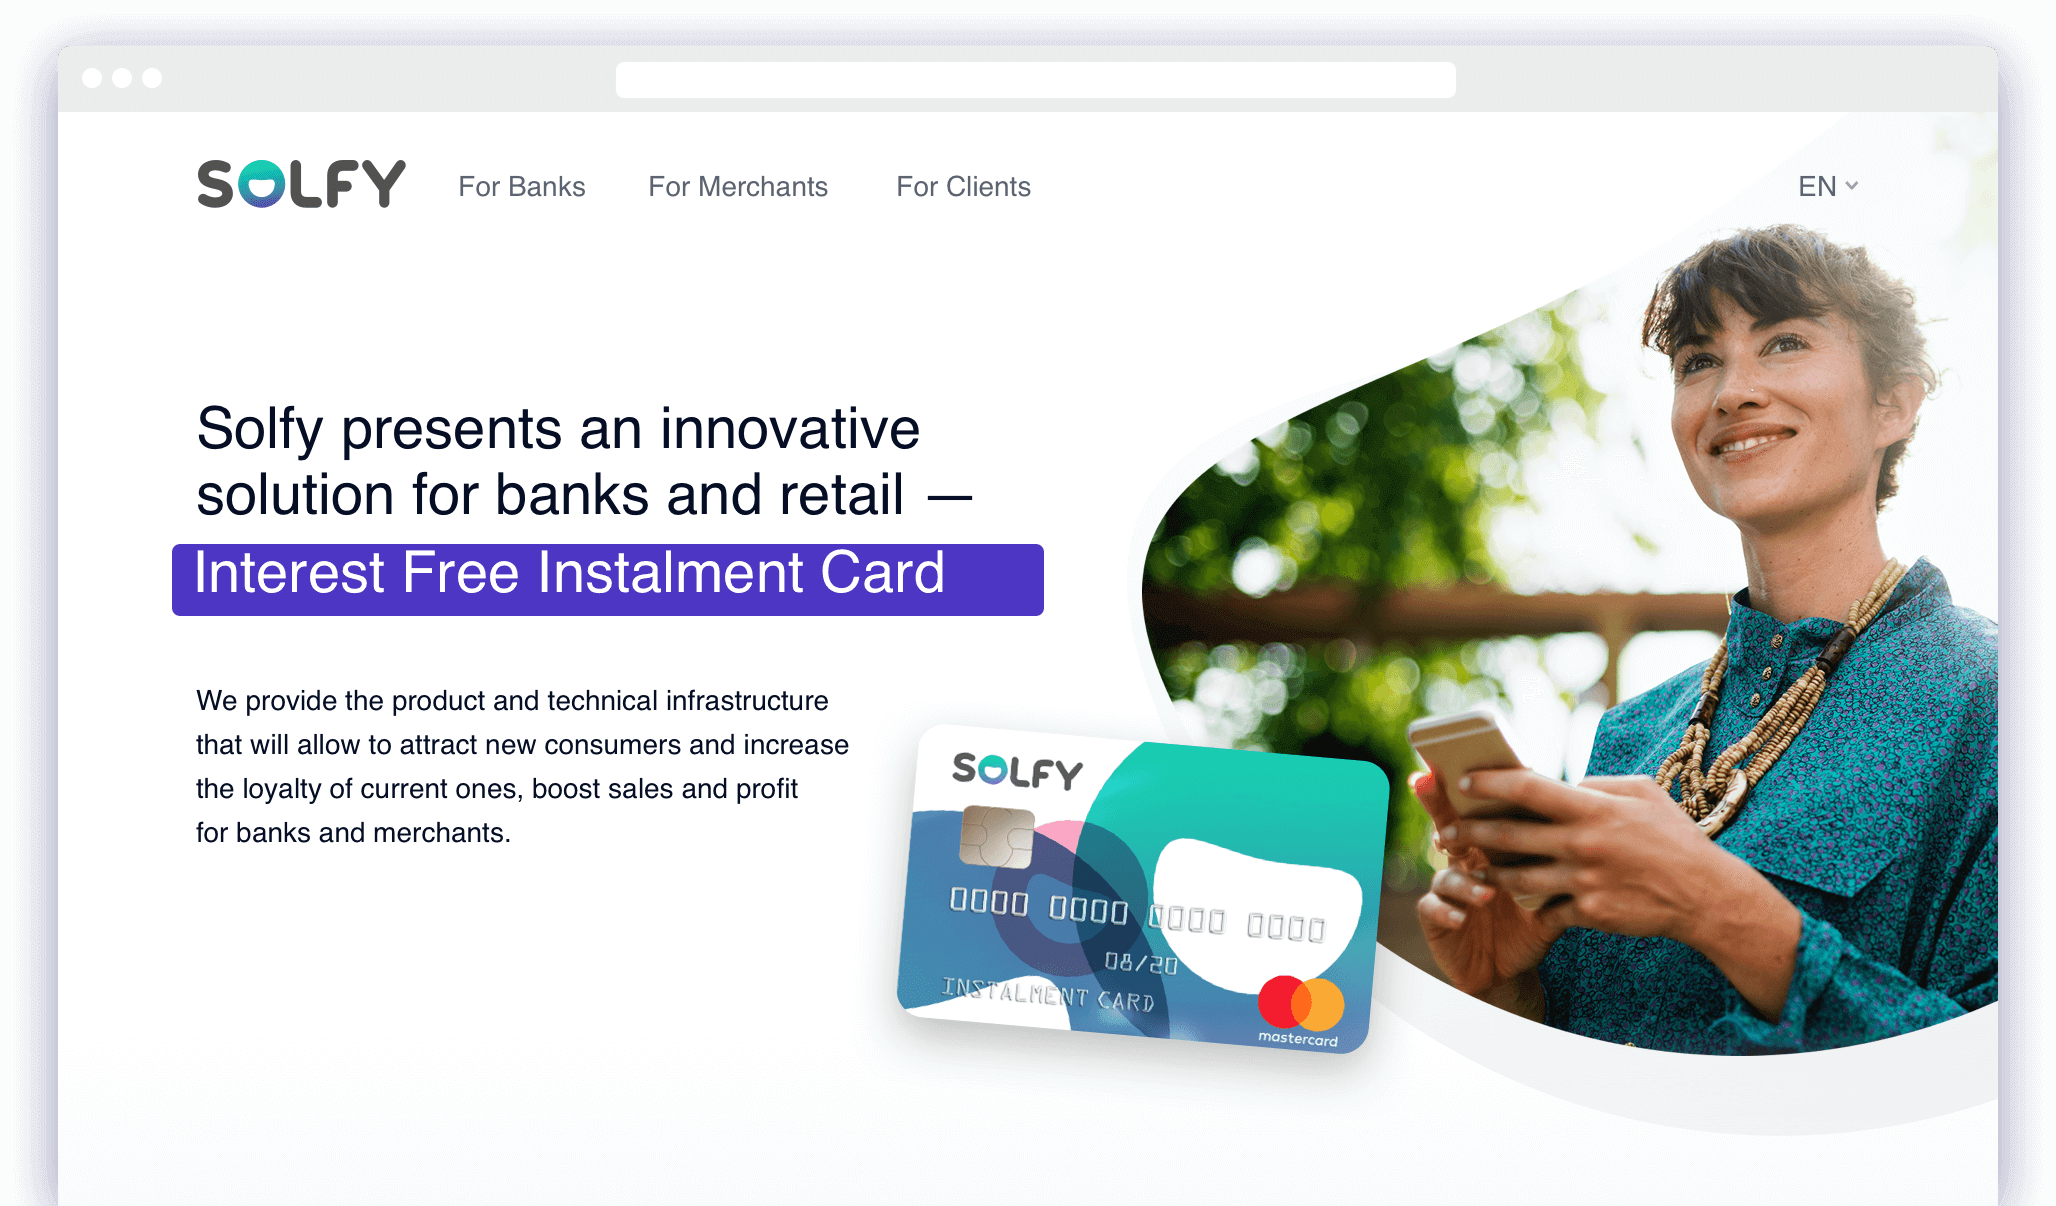 Solfy website main page. A girl with an instalment card Solfy.